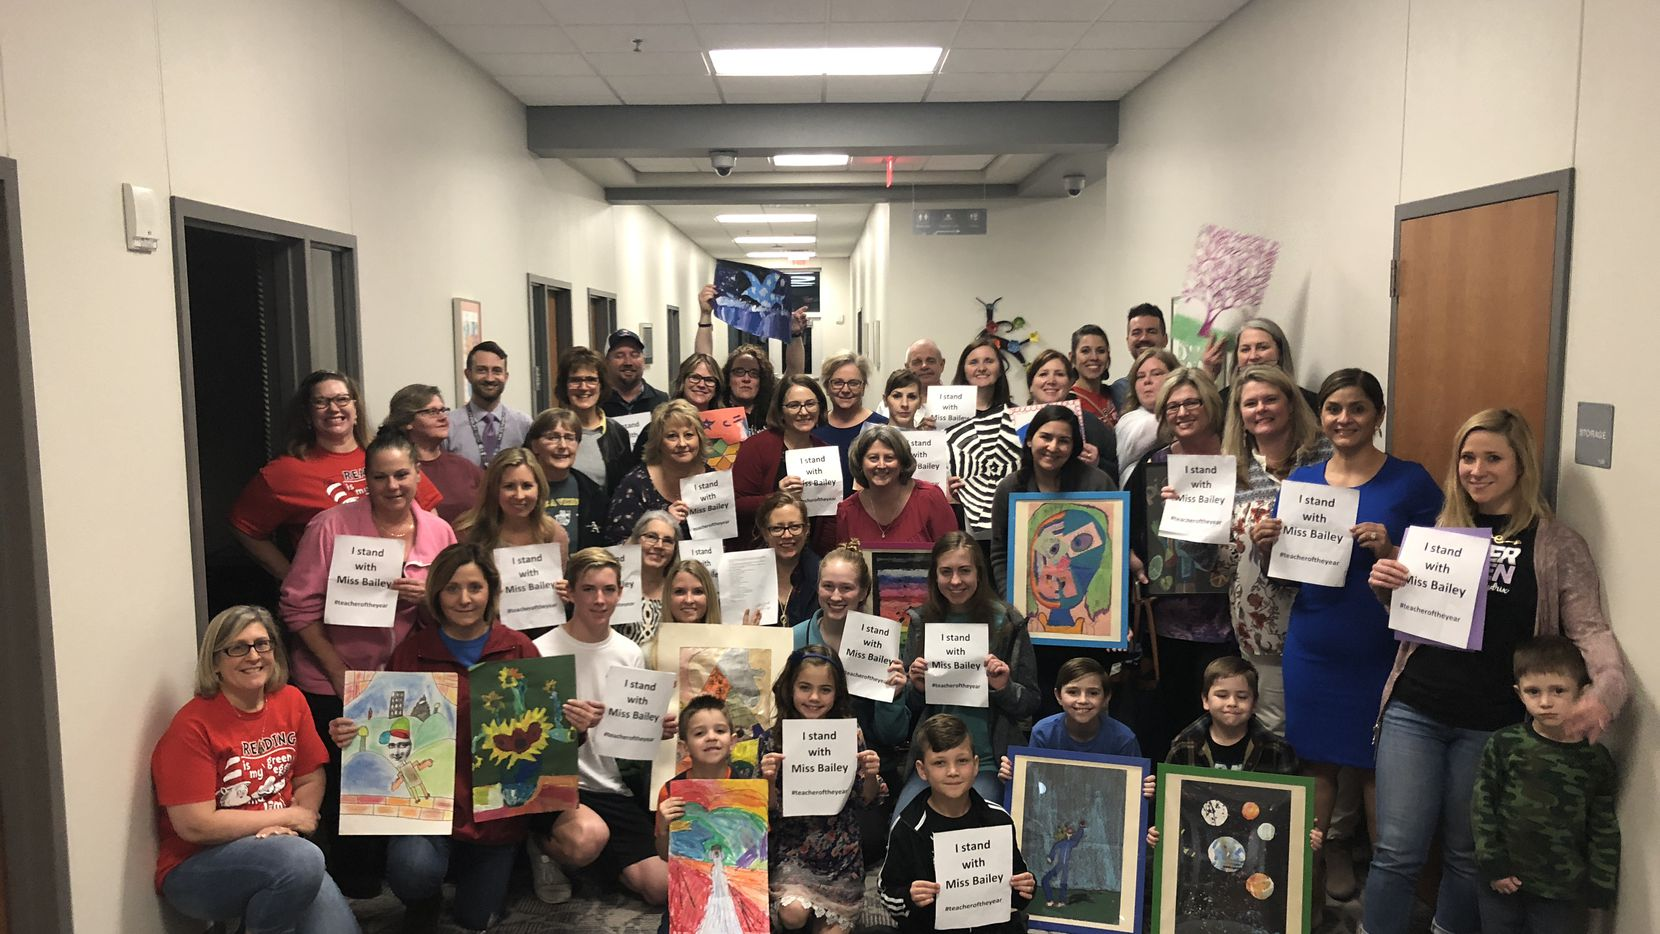 Approximately 40 parents and students showed up at Tuesday night's school board meeting to speak in support of Stacy Bailey.